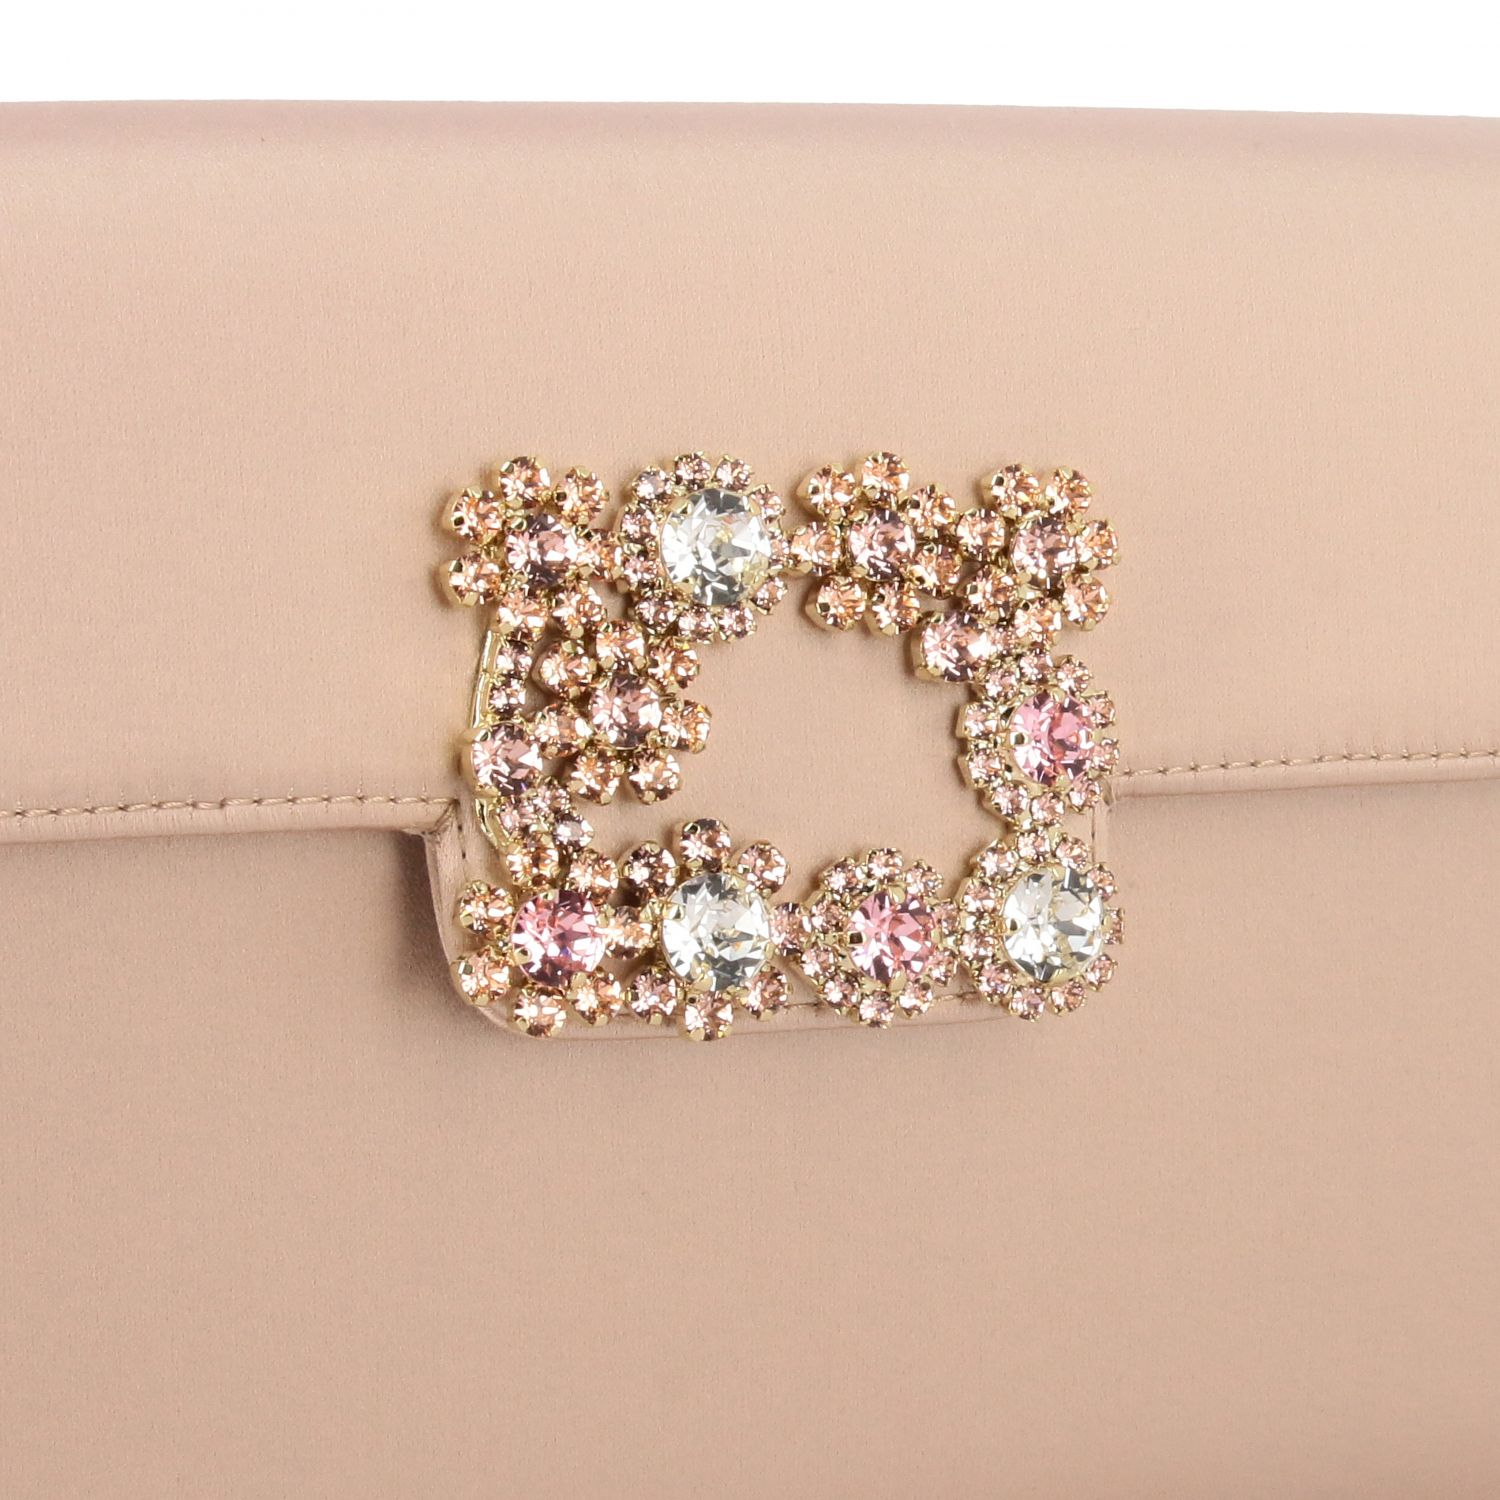 Roger Vivier satin clutch with crystal flower buckle nude 4